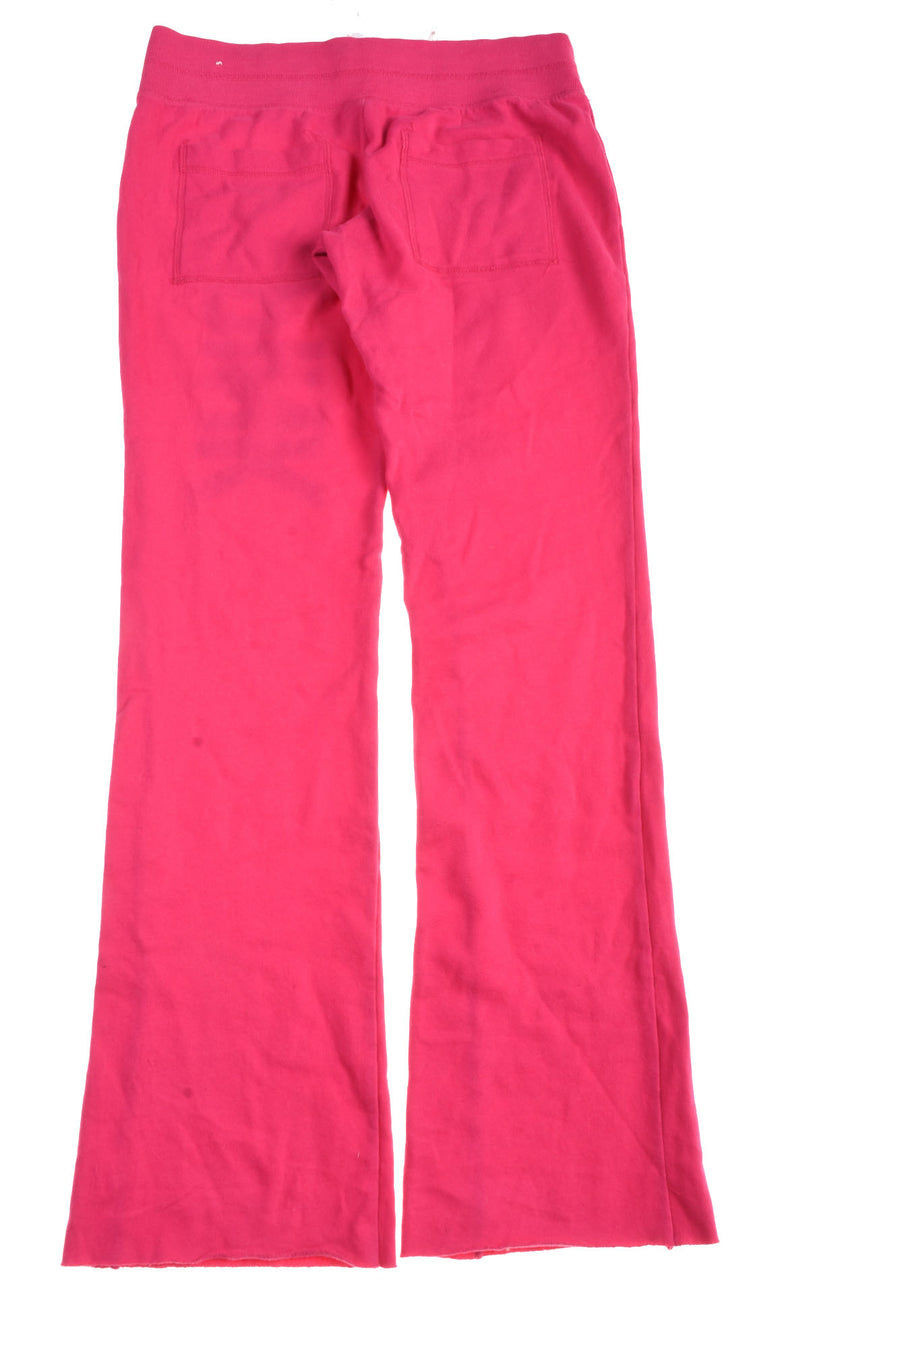 Women's Pants By Pink By Victoria's Secret